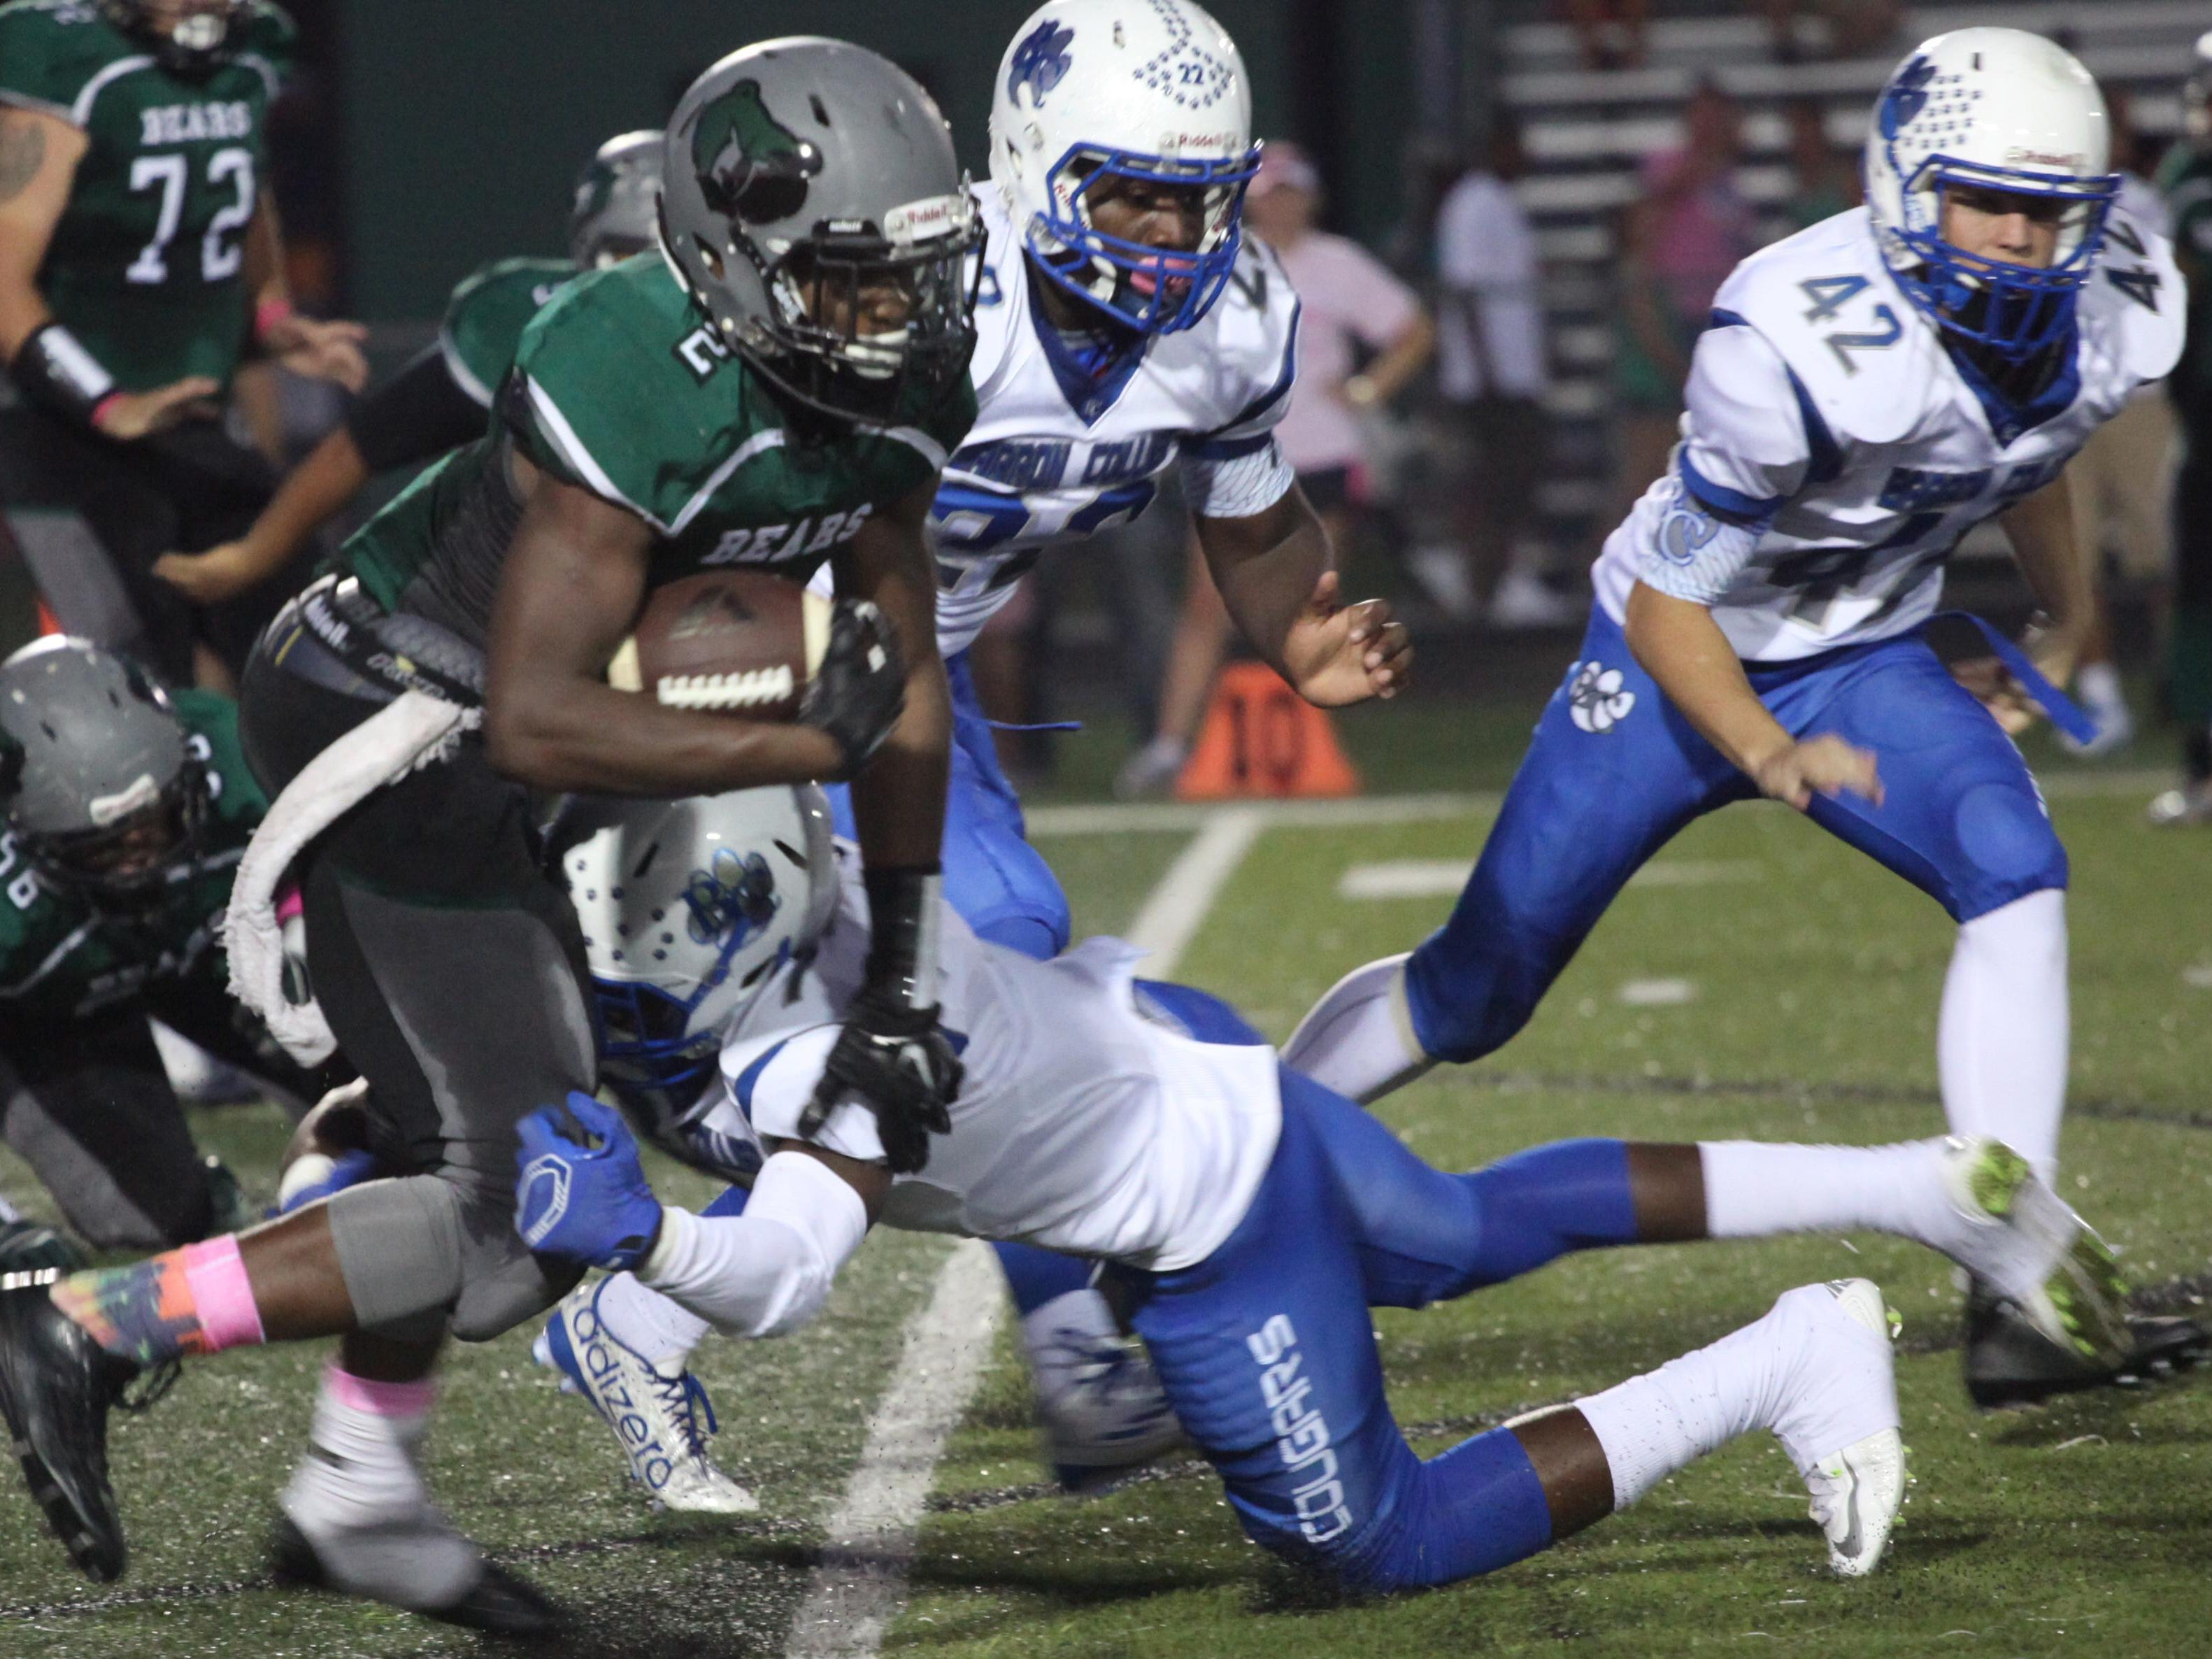 Palmetto Ridge's Jaheem Washington is tackled by Barron Collier's Jacine Olibrice during a game on Friday night.